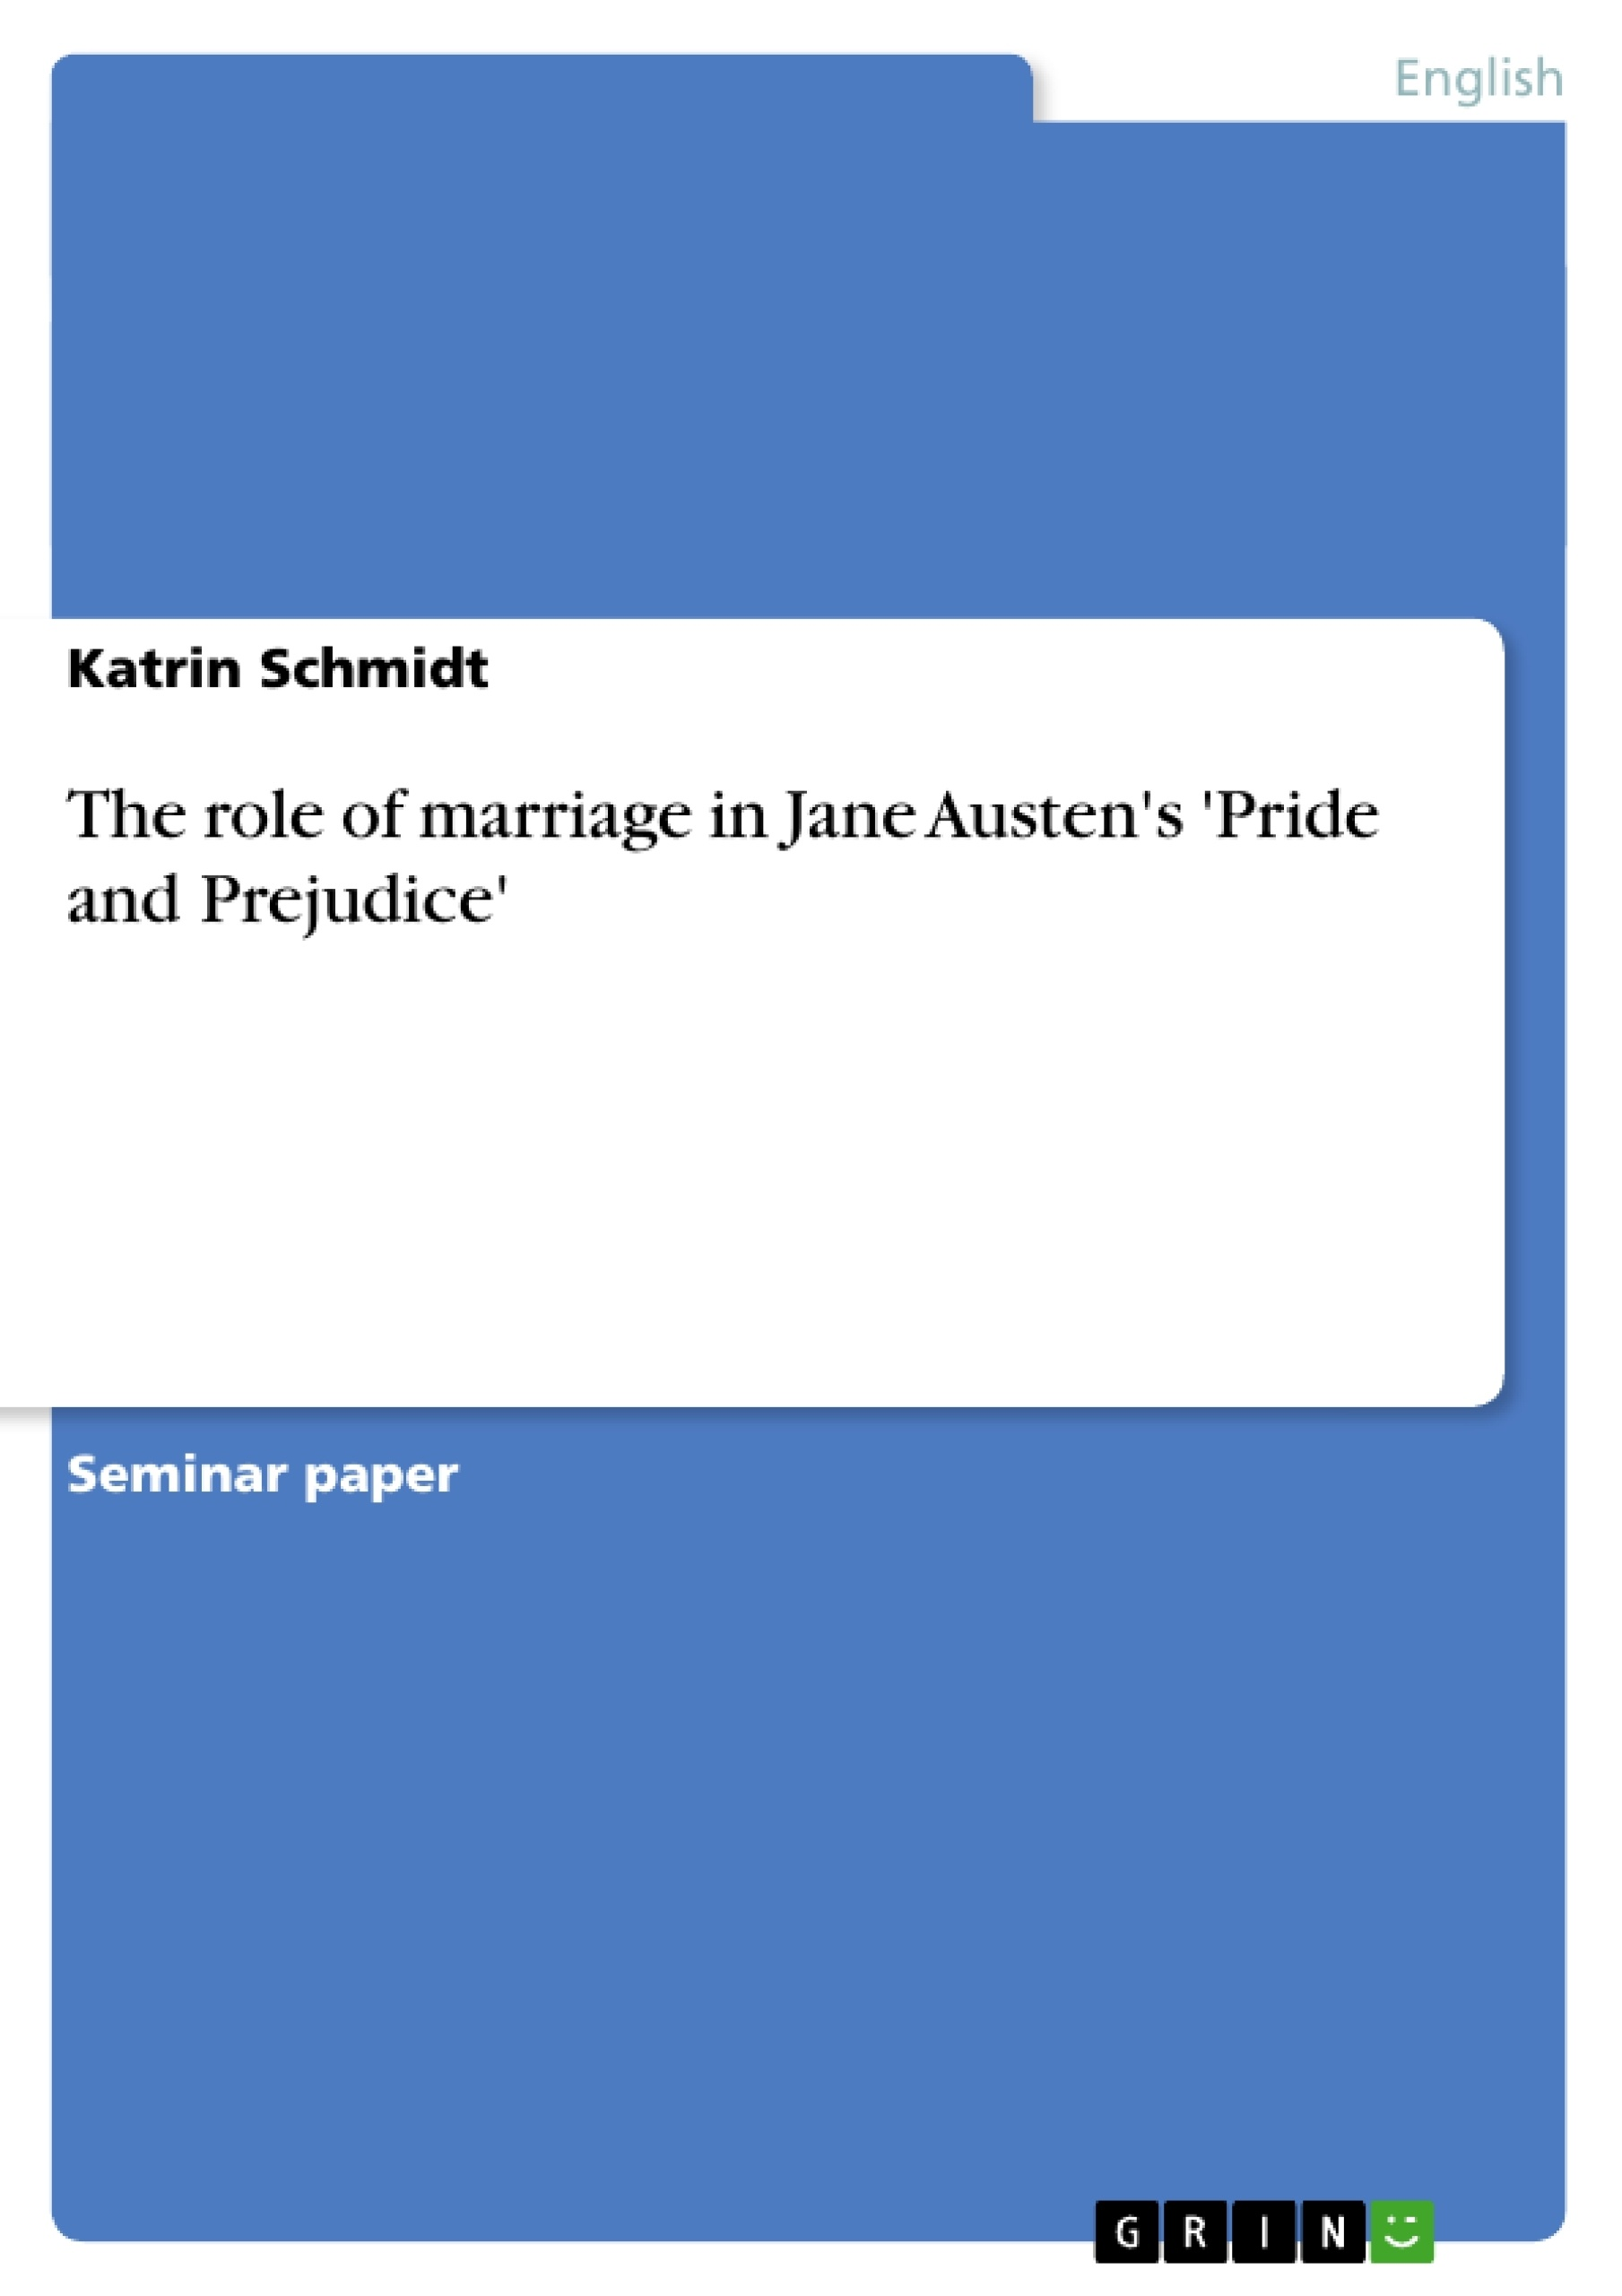 Título: The role of marriage in Jane Austen's 'Pride and Prejudice'